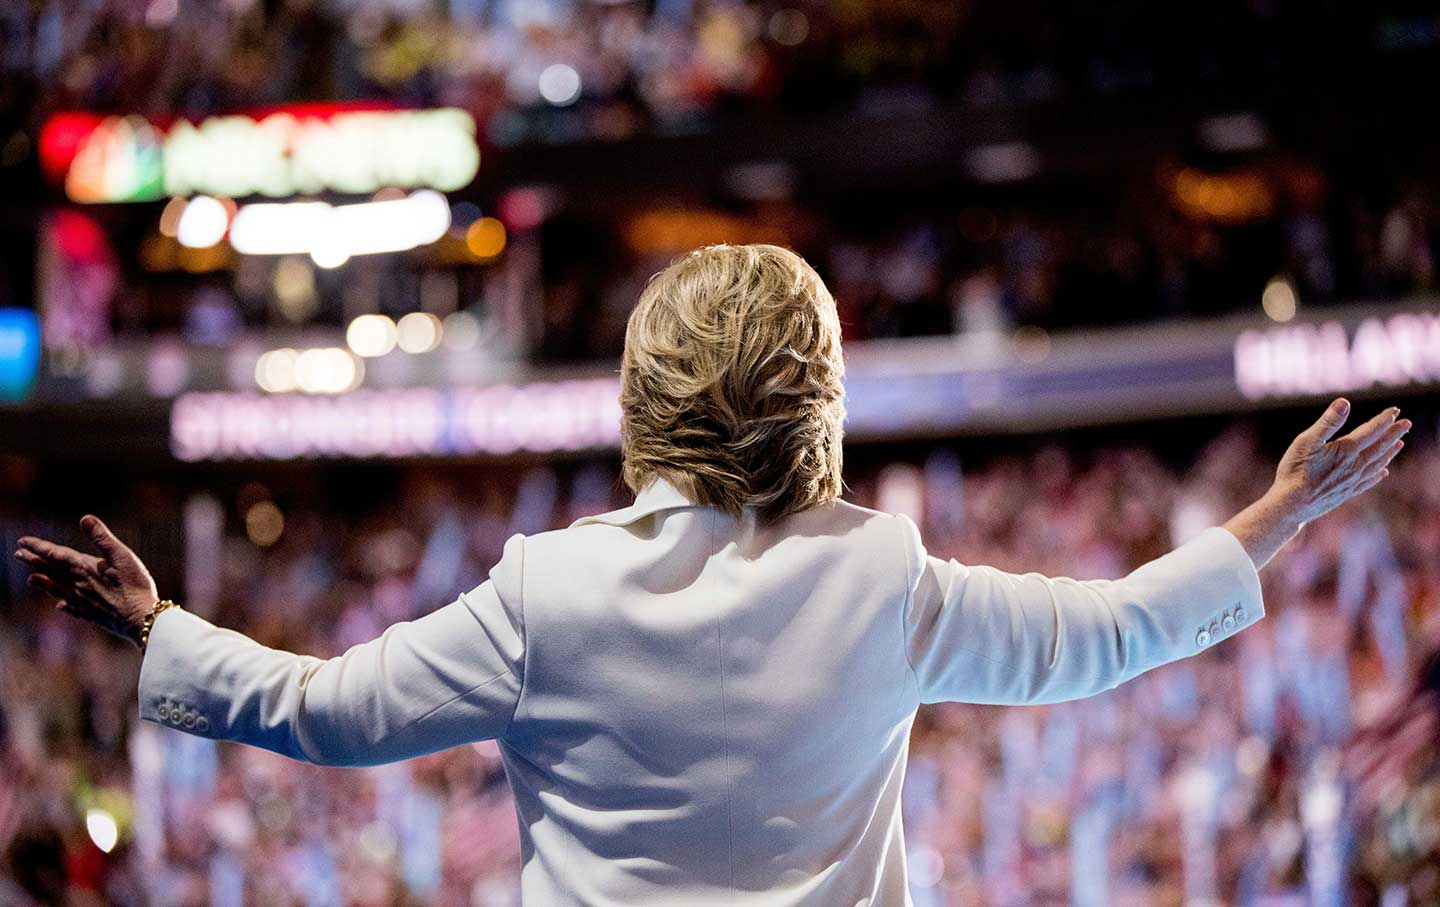 hillary_clinton_DNC_speech_outreach_ap_img